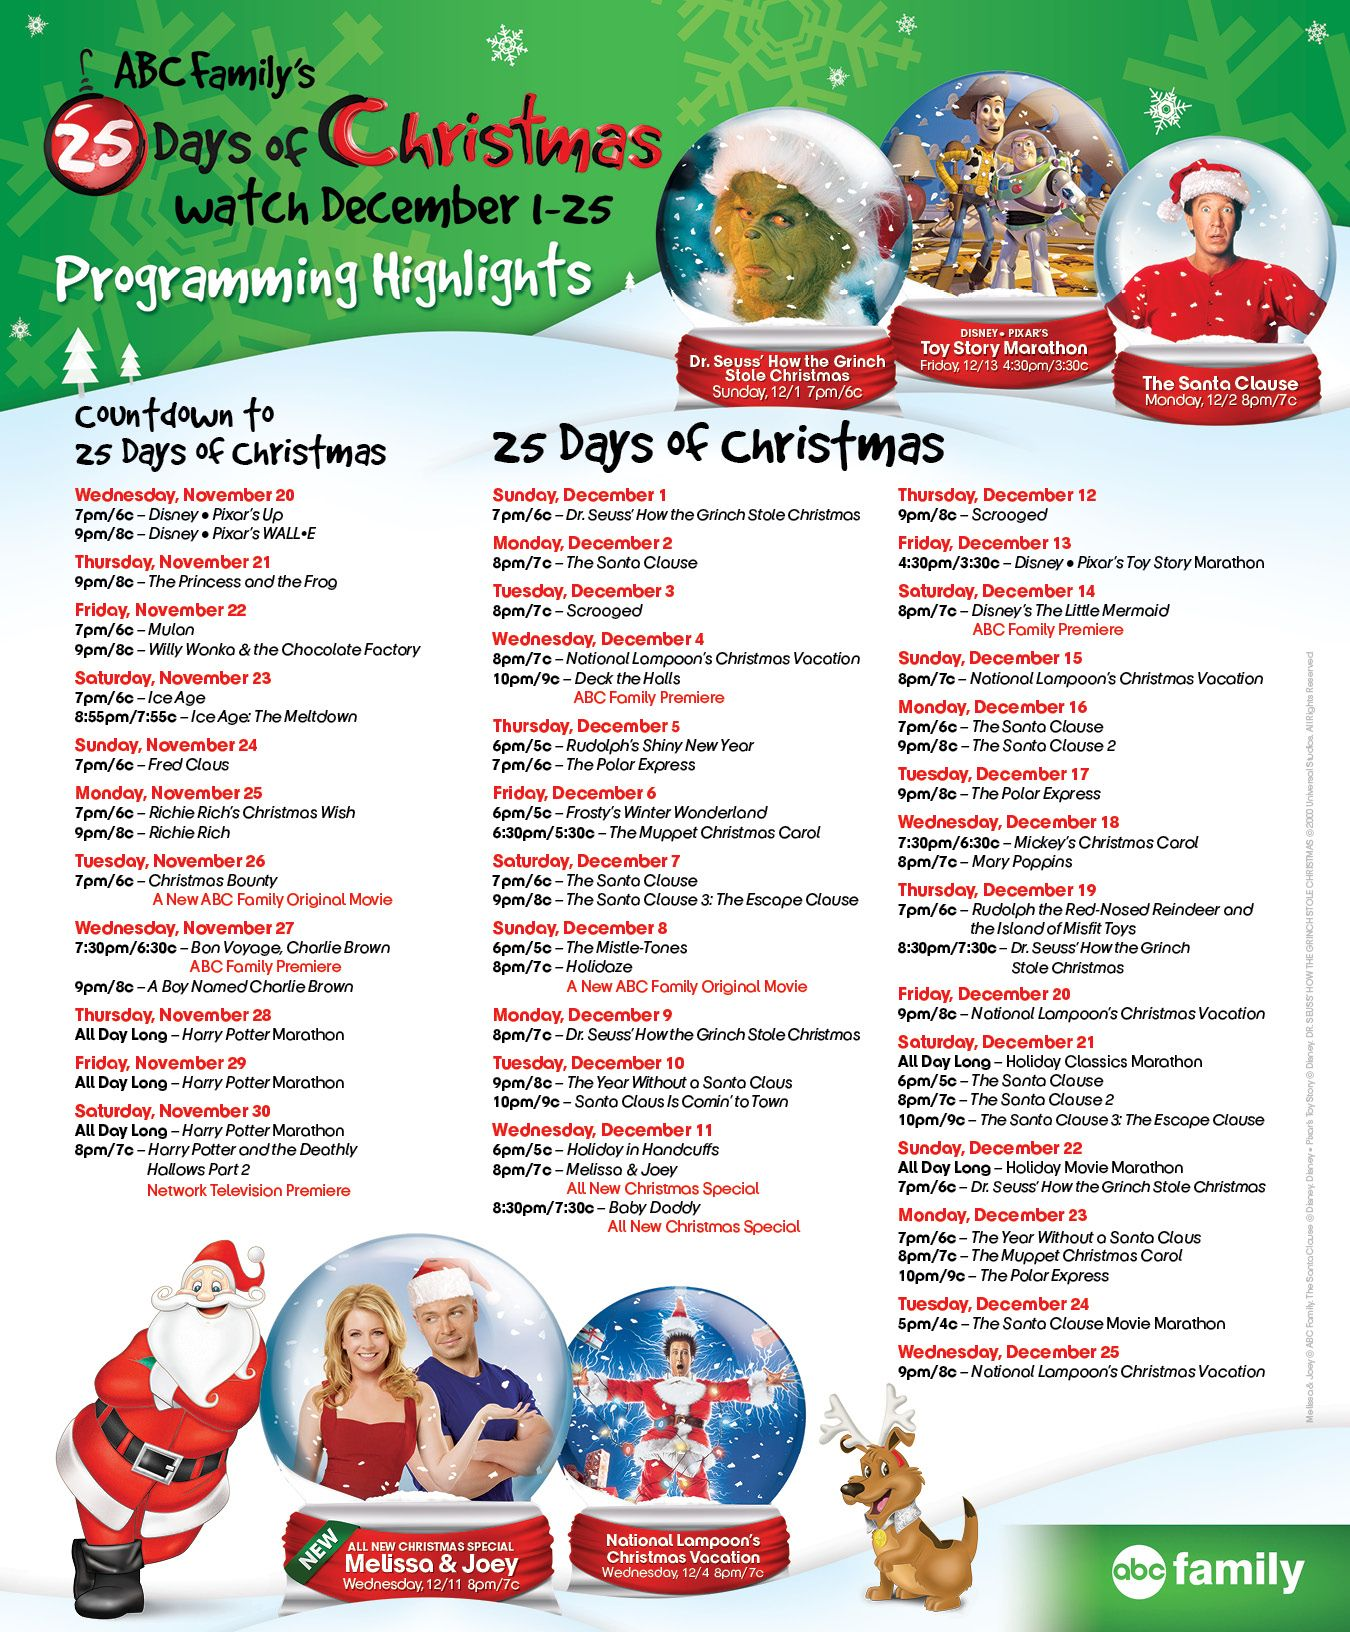 ea732d5993db89 Huge List of ABC Family 25 Days of Christmas Schedule Start Times + Info on  each show and more!